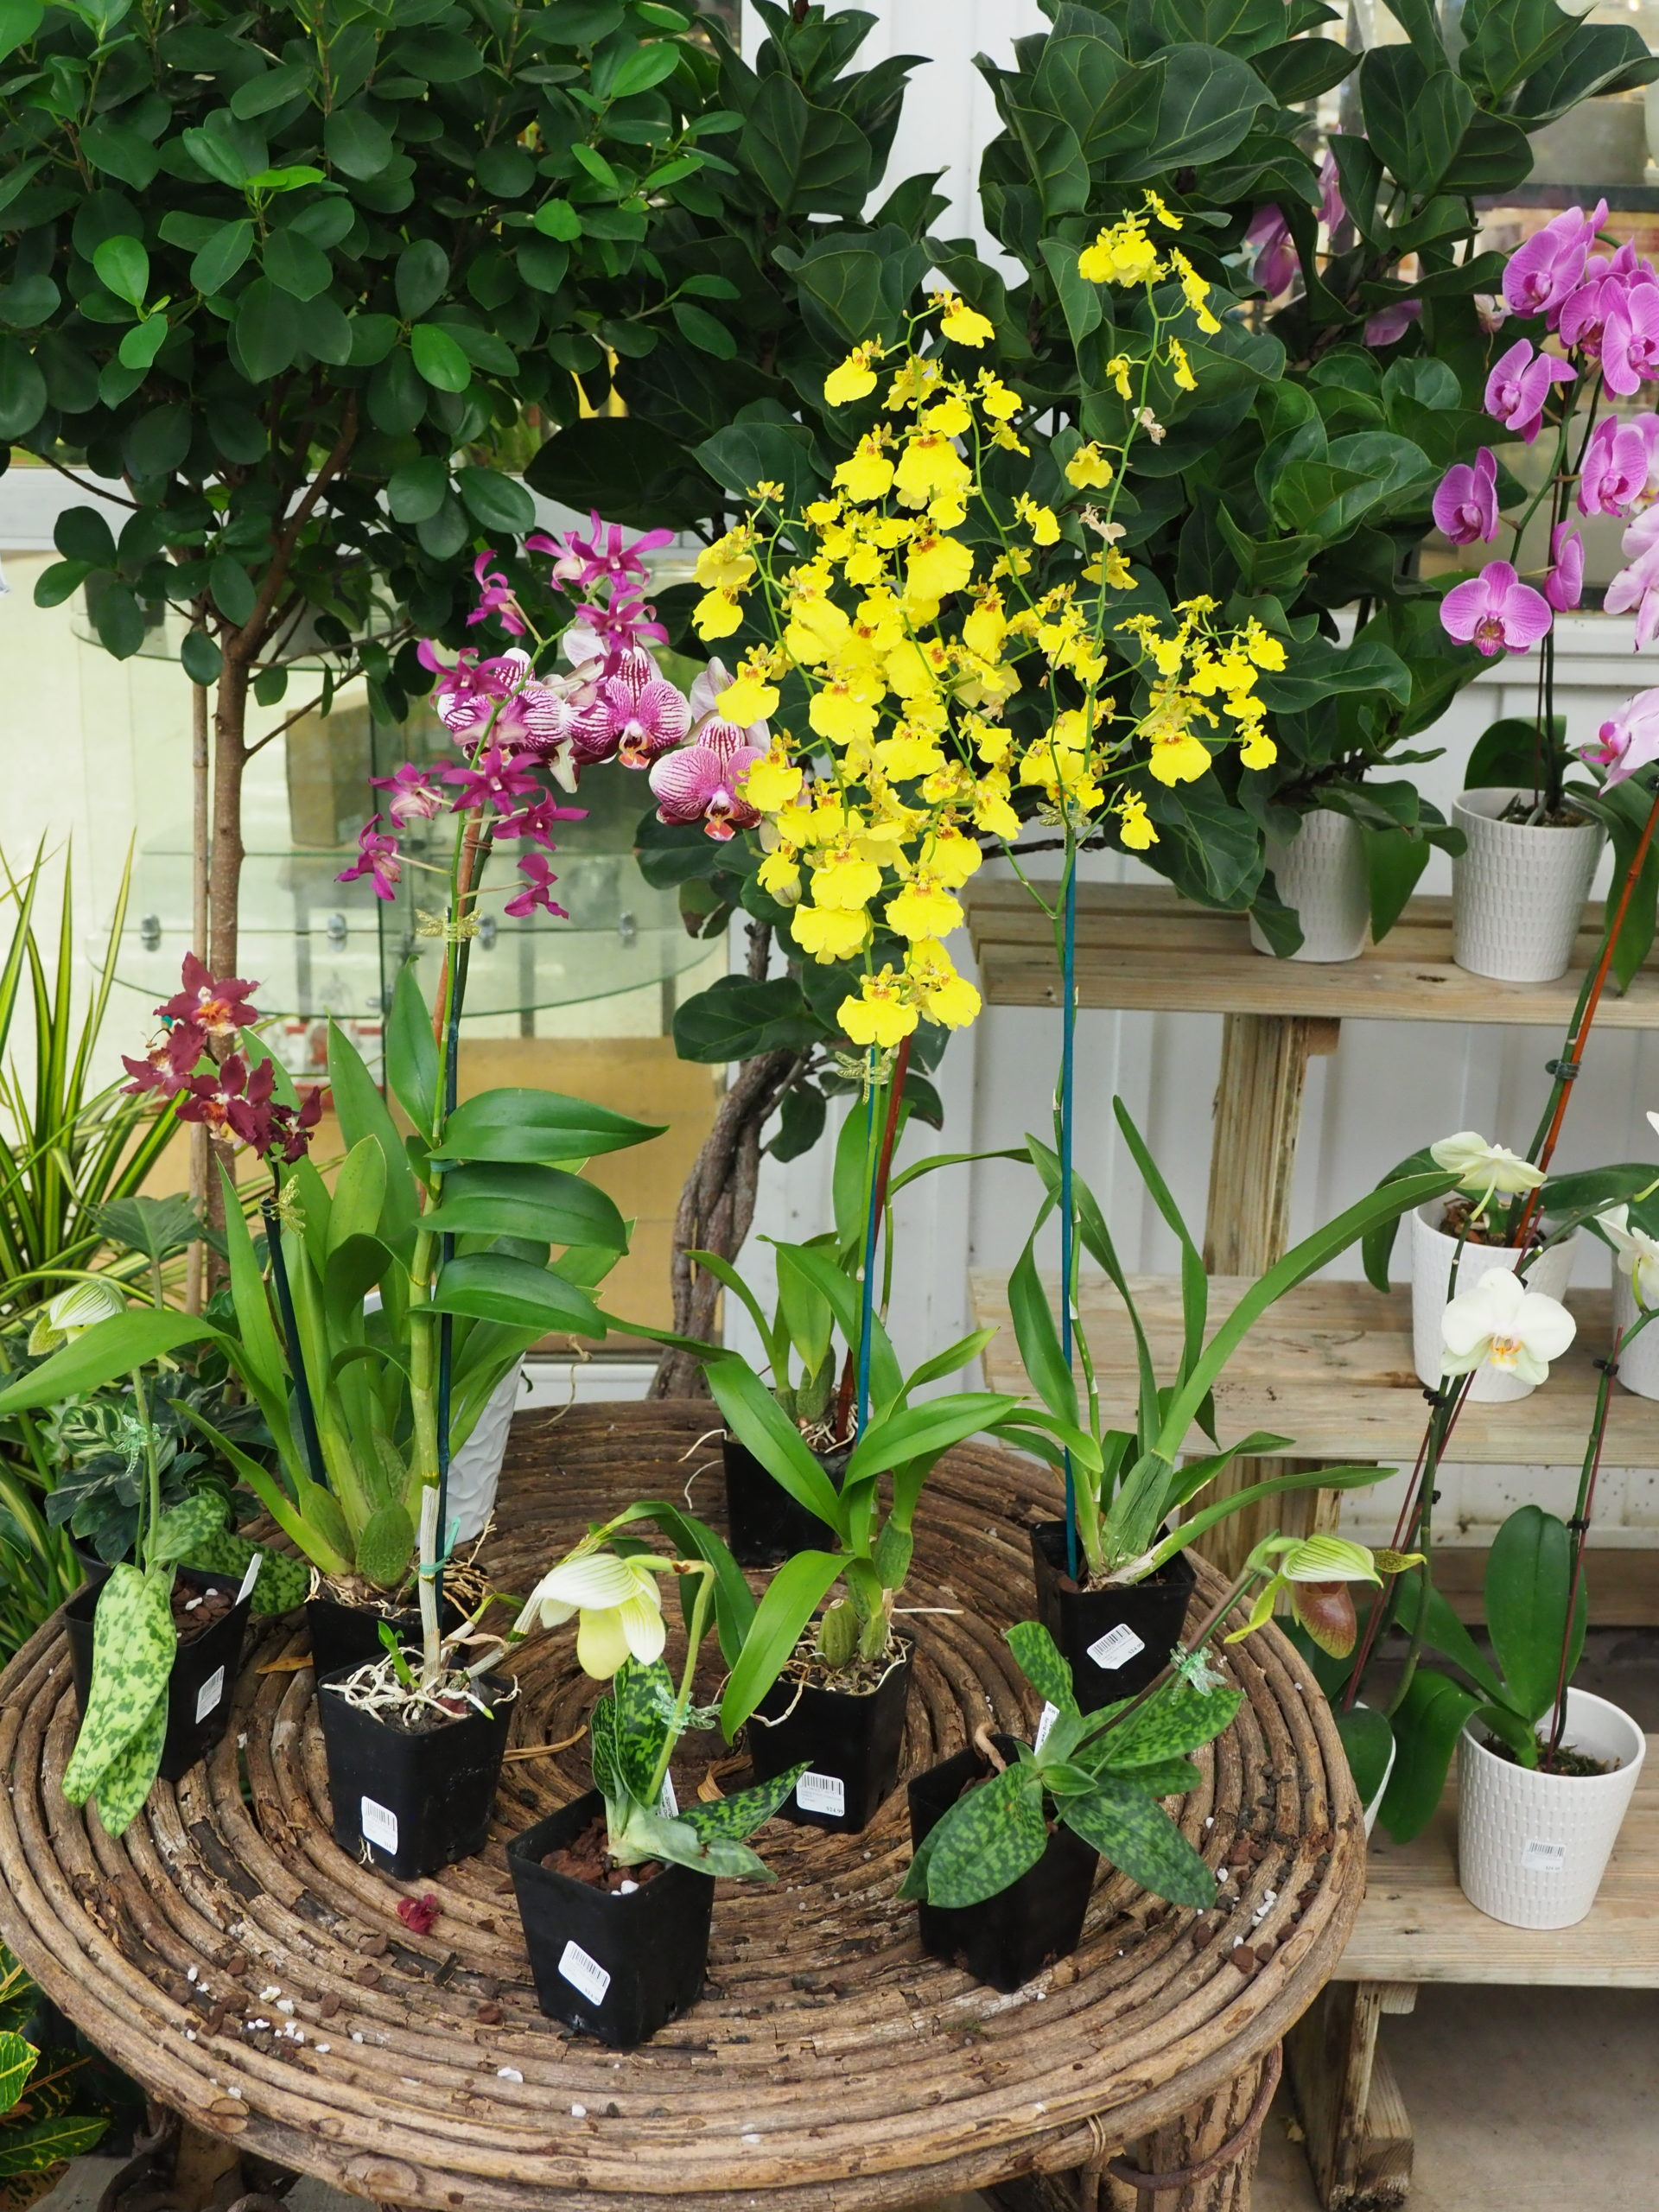 Once considered a plant for only accomplished gardeners, orchids are now so inexpensive that they are nearly disposable. Getting them to rebloom is the challenge, but when they do, there's an incredible sense of accomplishment. Some are very easy, others, much harder. Flowers often last for weeks to months.